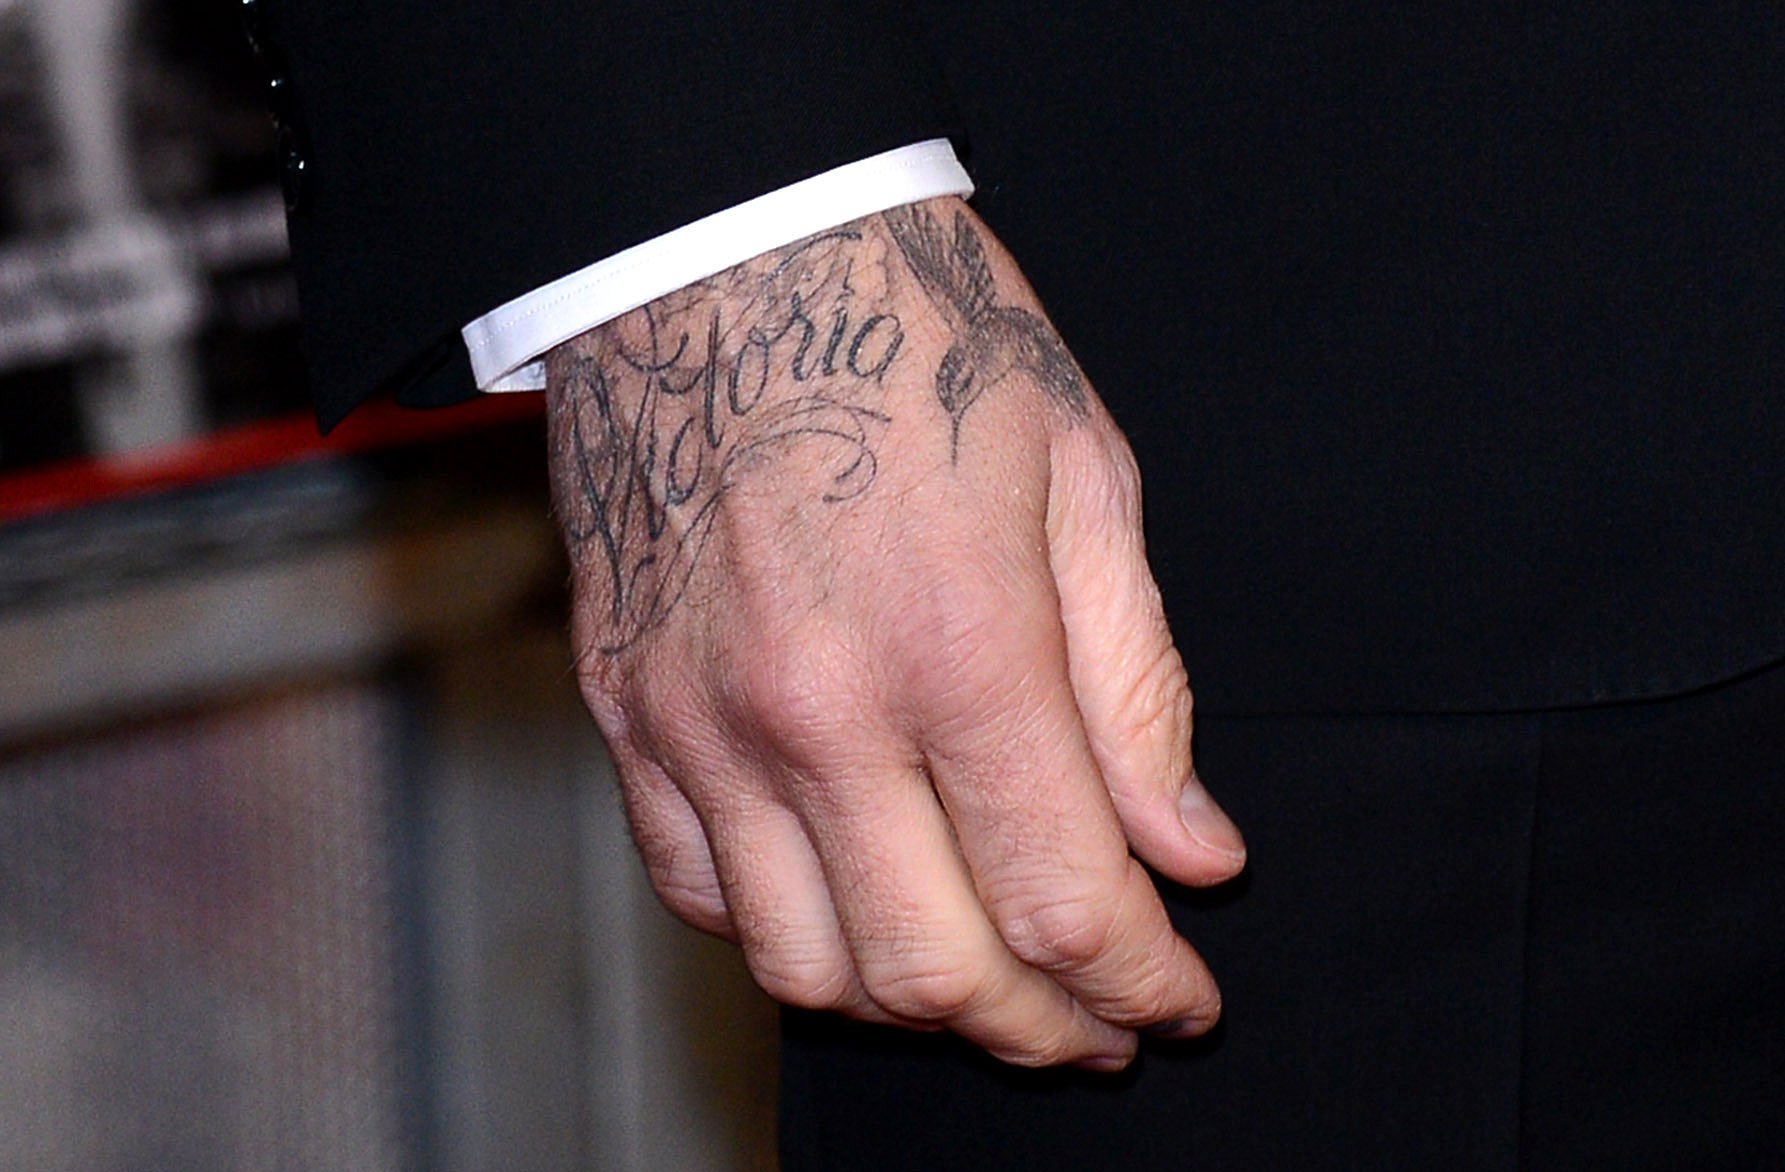 Victoria and David Beckham timeline gallery - David showcased his love for his wife through ink once more in September 2013, when he showed up to The Global Fund at Apsley House in London with her name tattooed in cursive across his right hand .